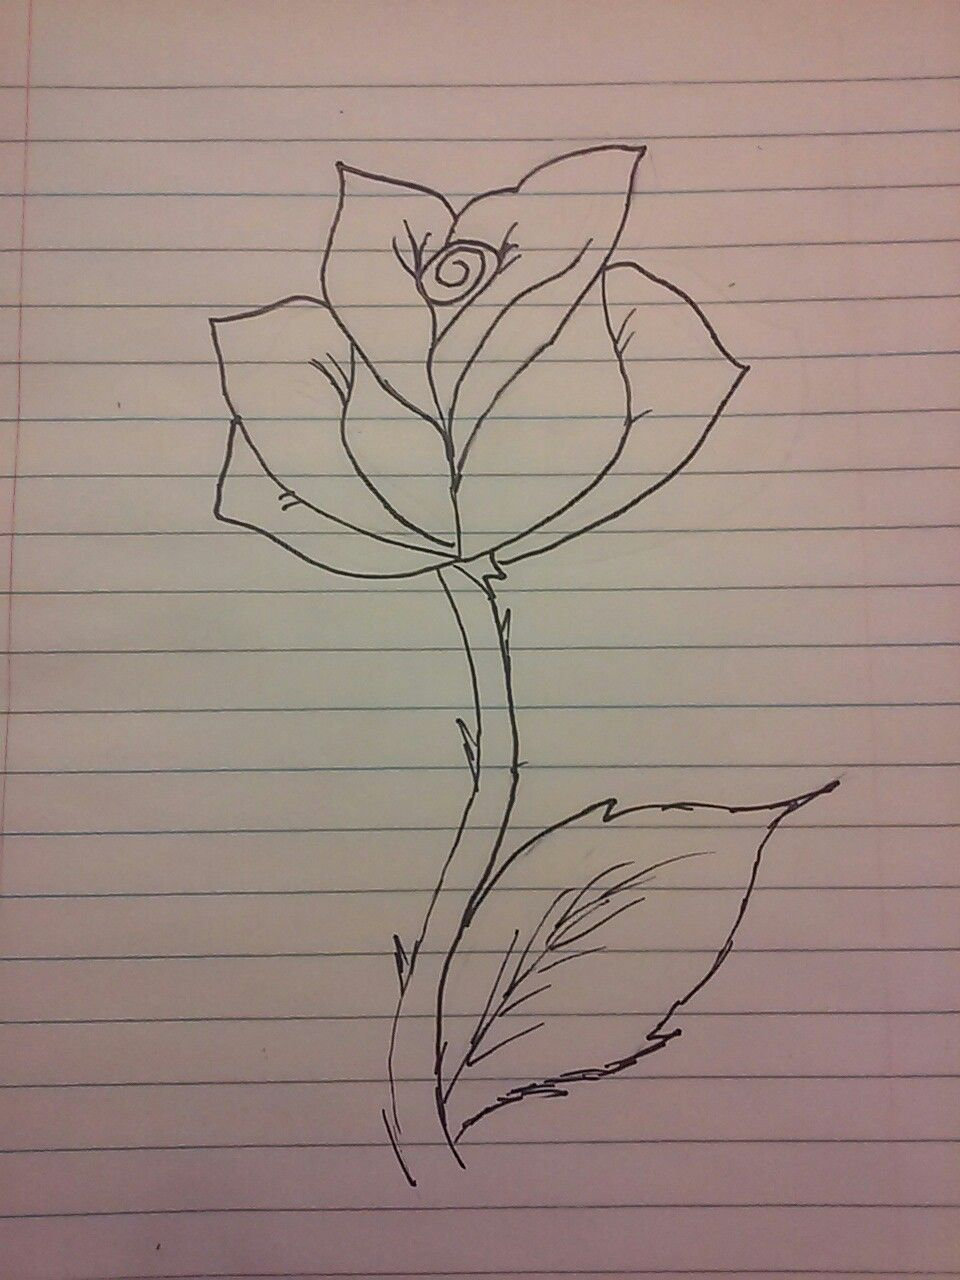 Roses are red violets are blue i left this one blank so then u can draw and color it too😊